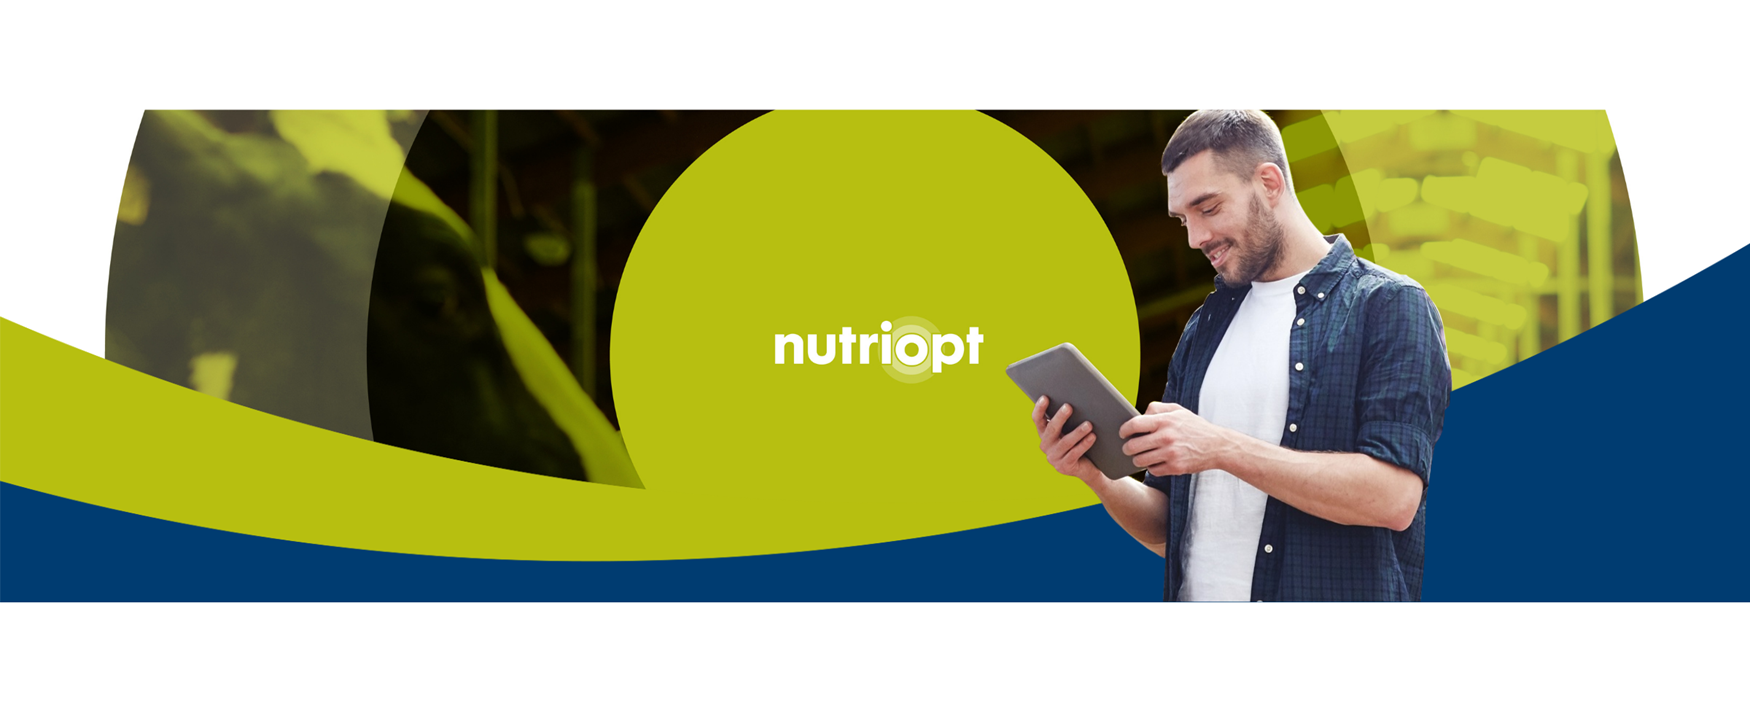 Welcome to NutriOpt